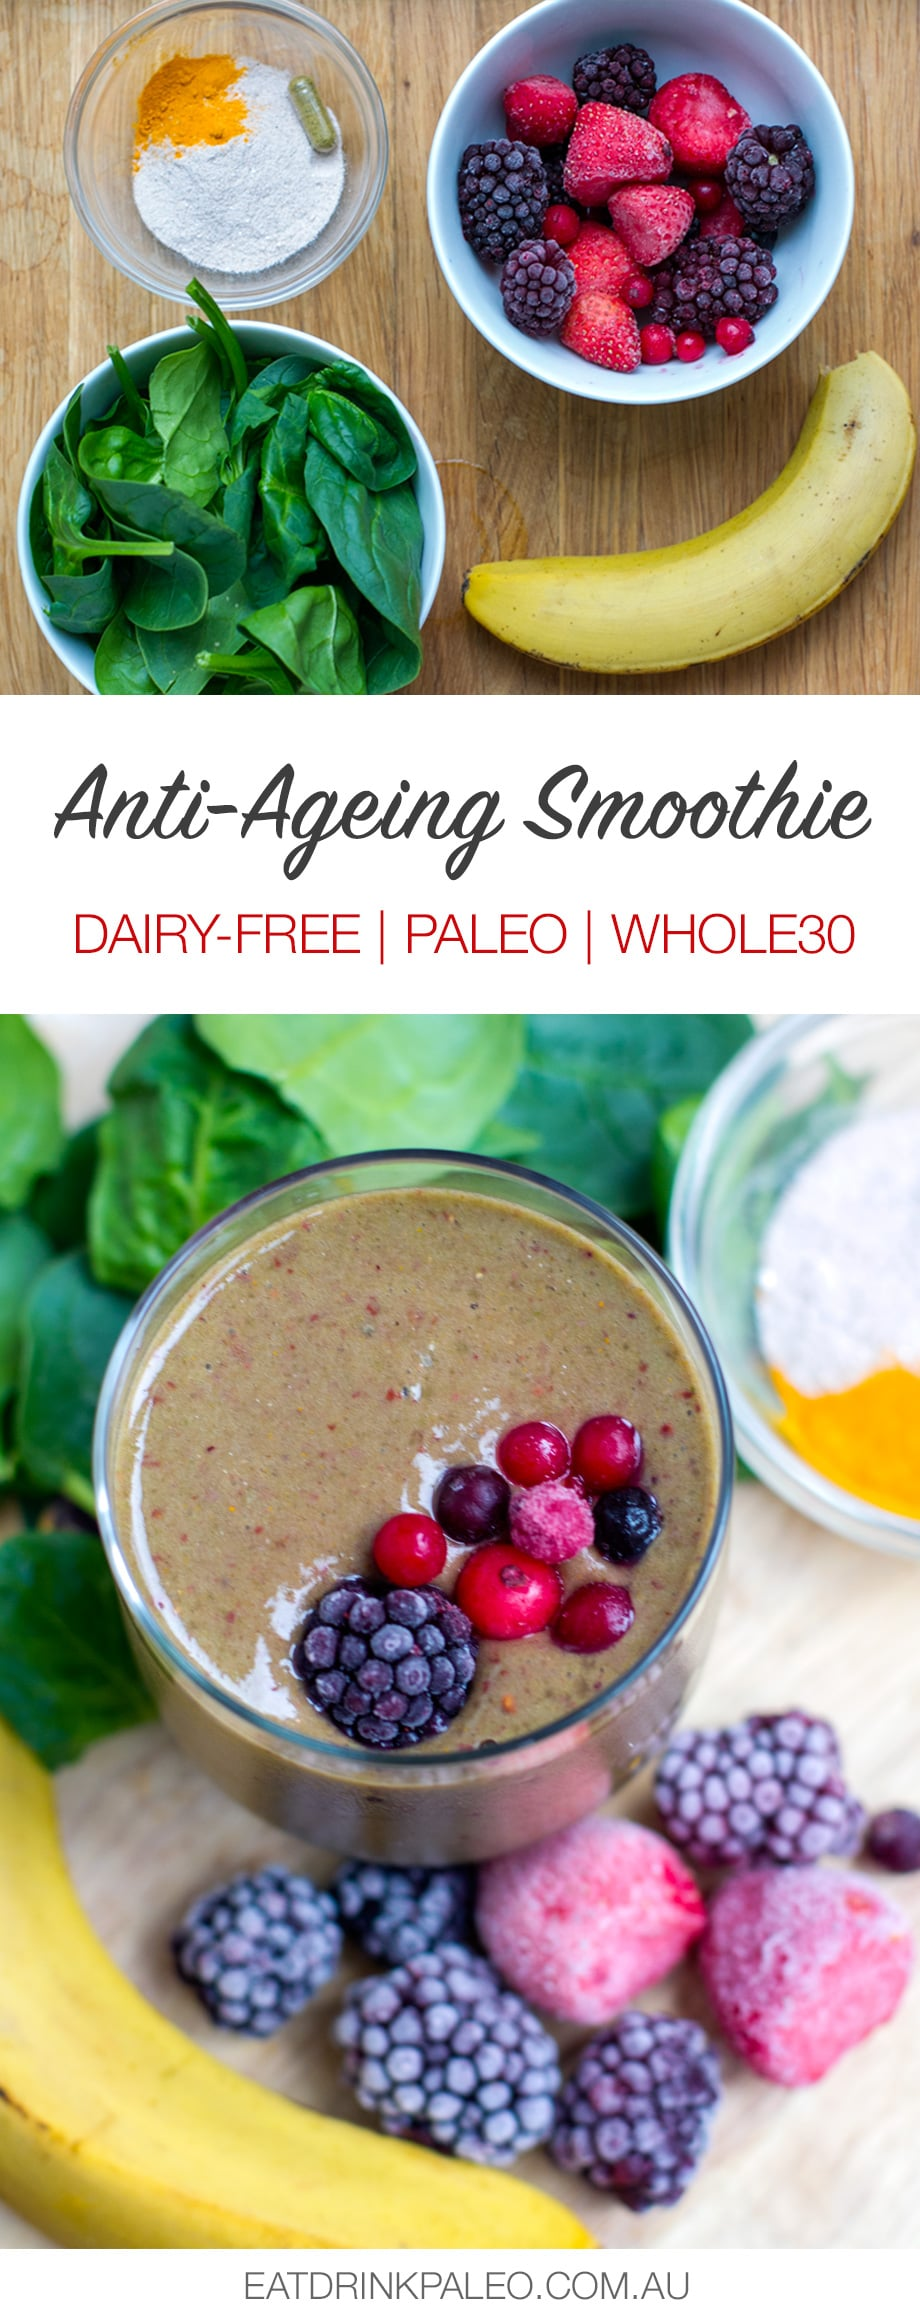 My Anti-Ageing Smoothie (dairy-free, whole30, paleo)